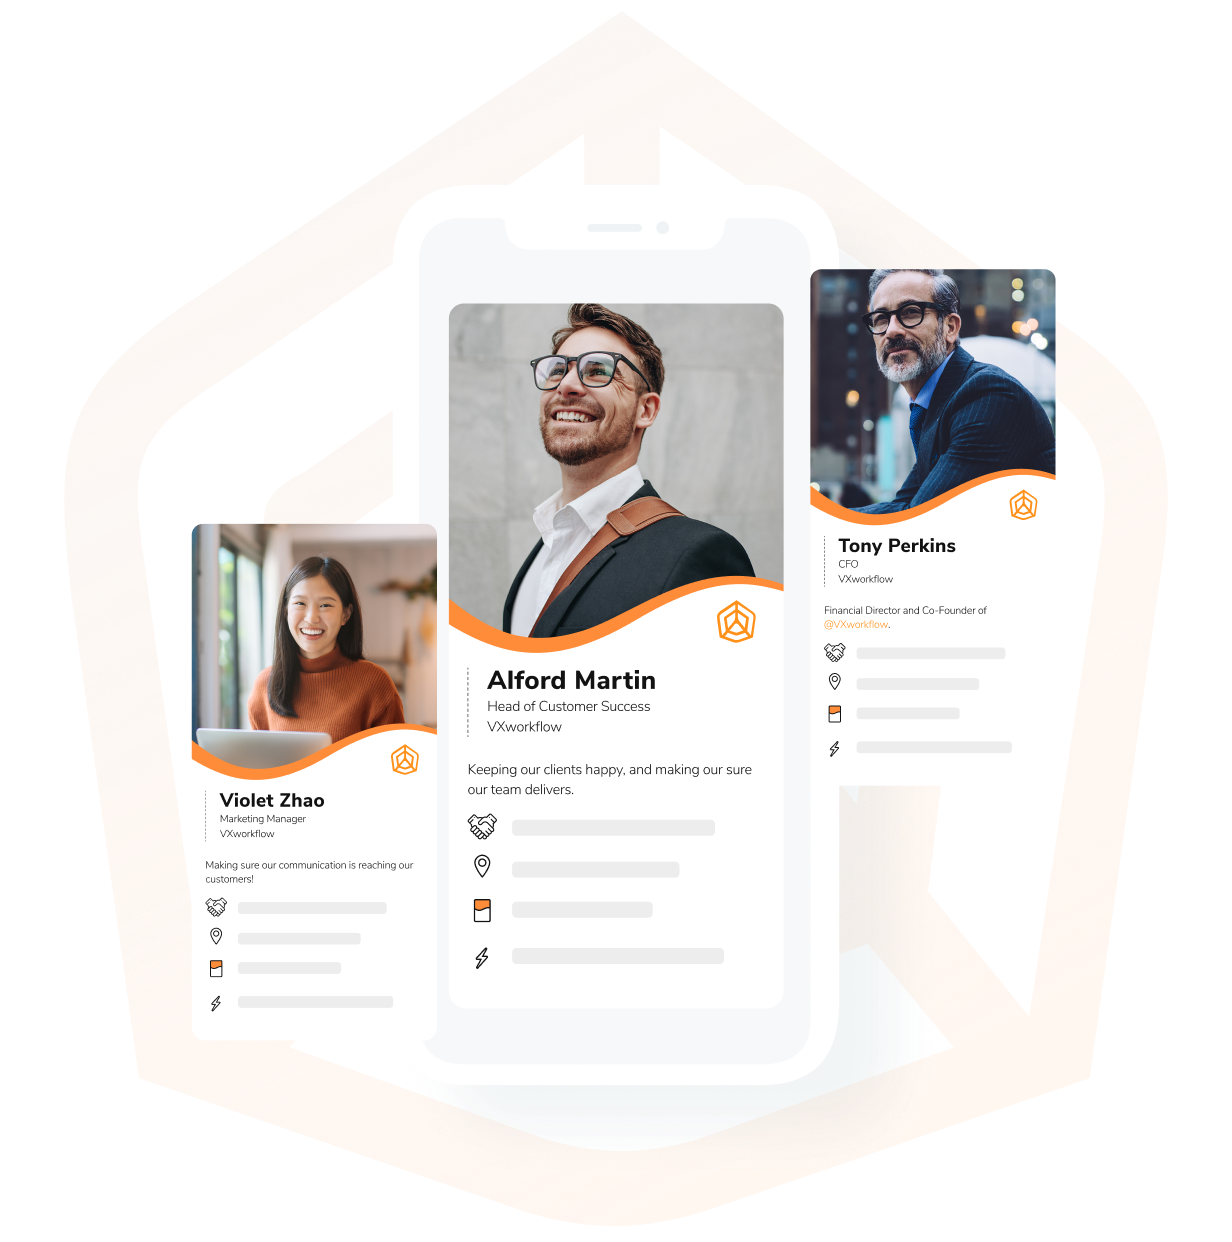 HiHello Business is a premium digital business card plan for teams and companies.